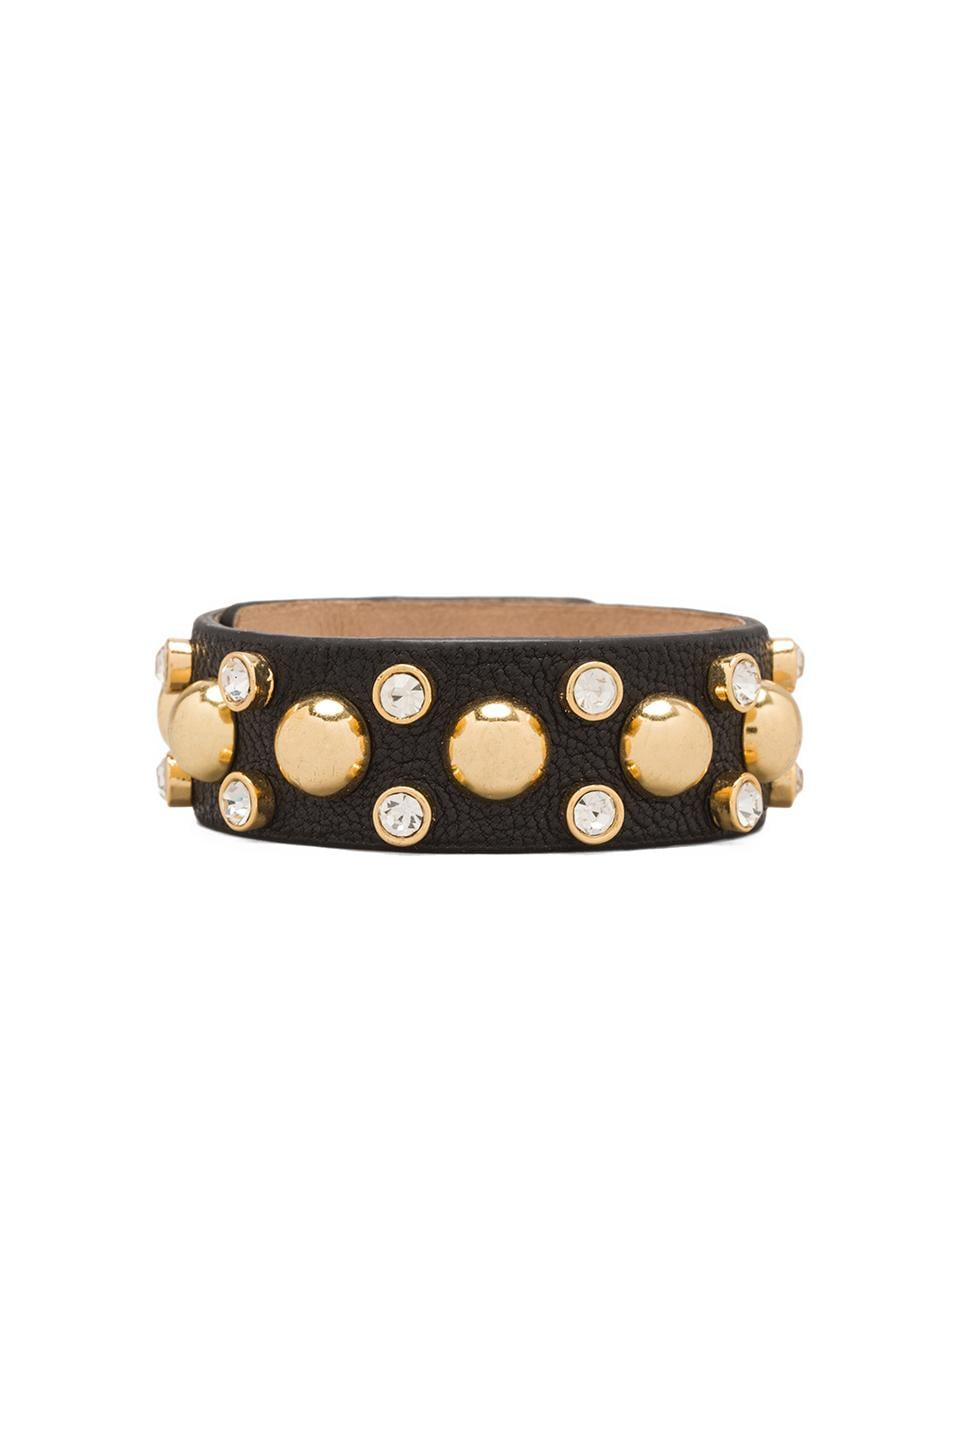 Juicy Couture Thin Studded Leather Cuff in Black